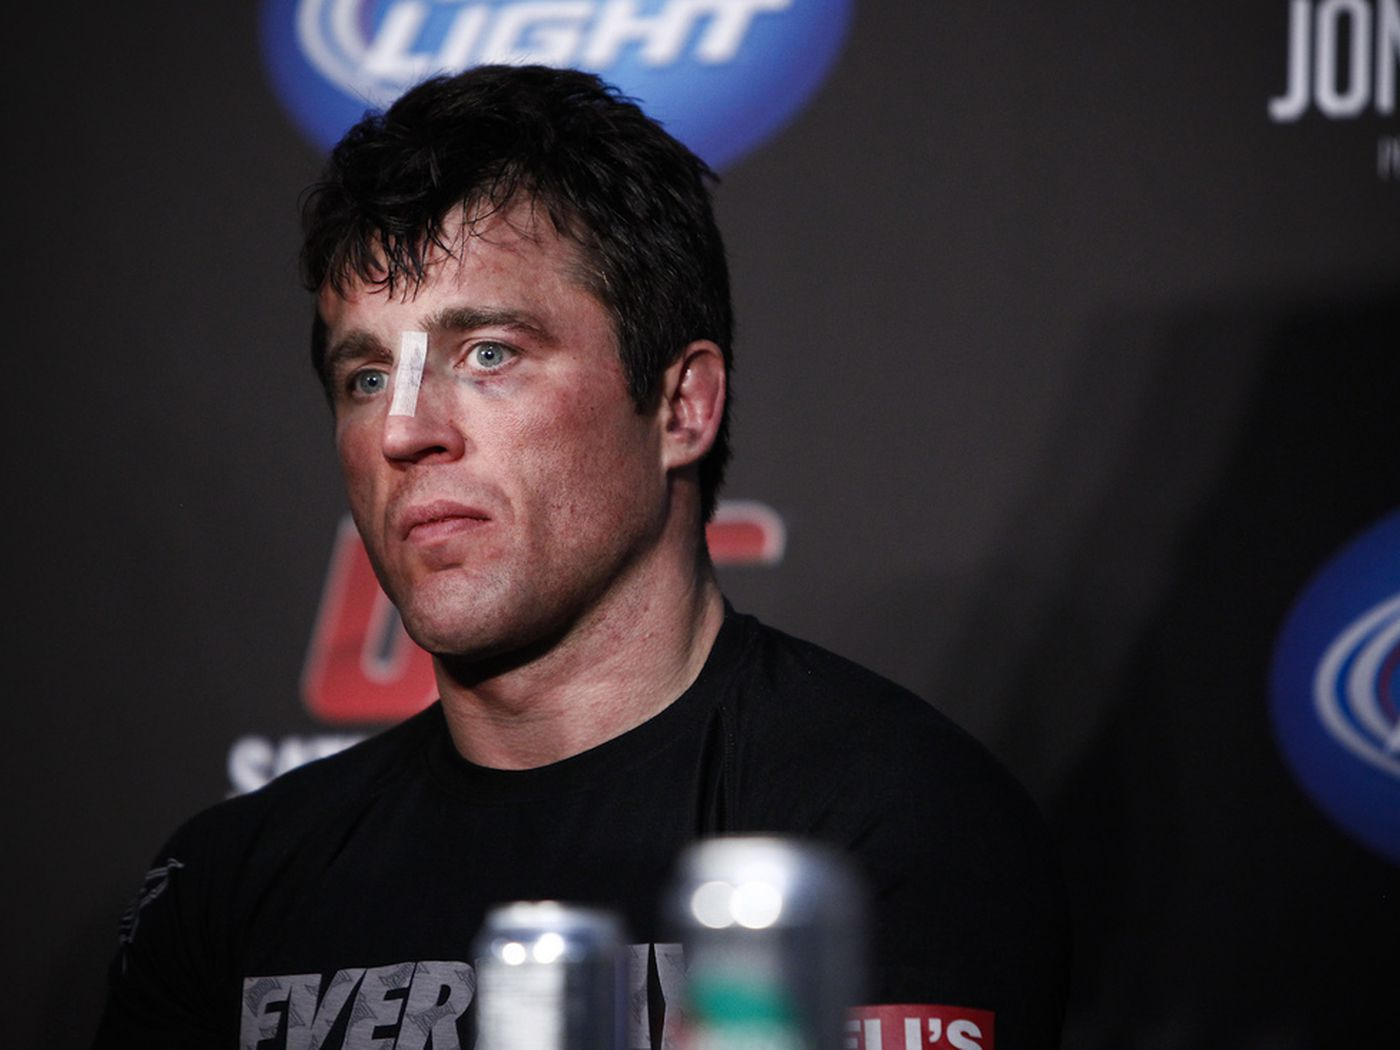 UFC 159 Aftermath: Will Chael Sonnen really retire? - MMA Fighting